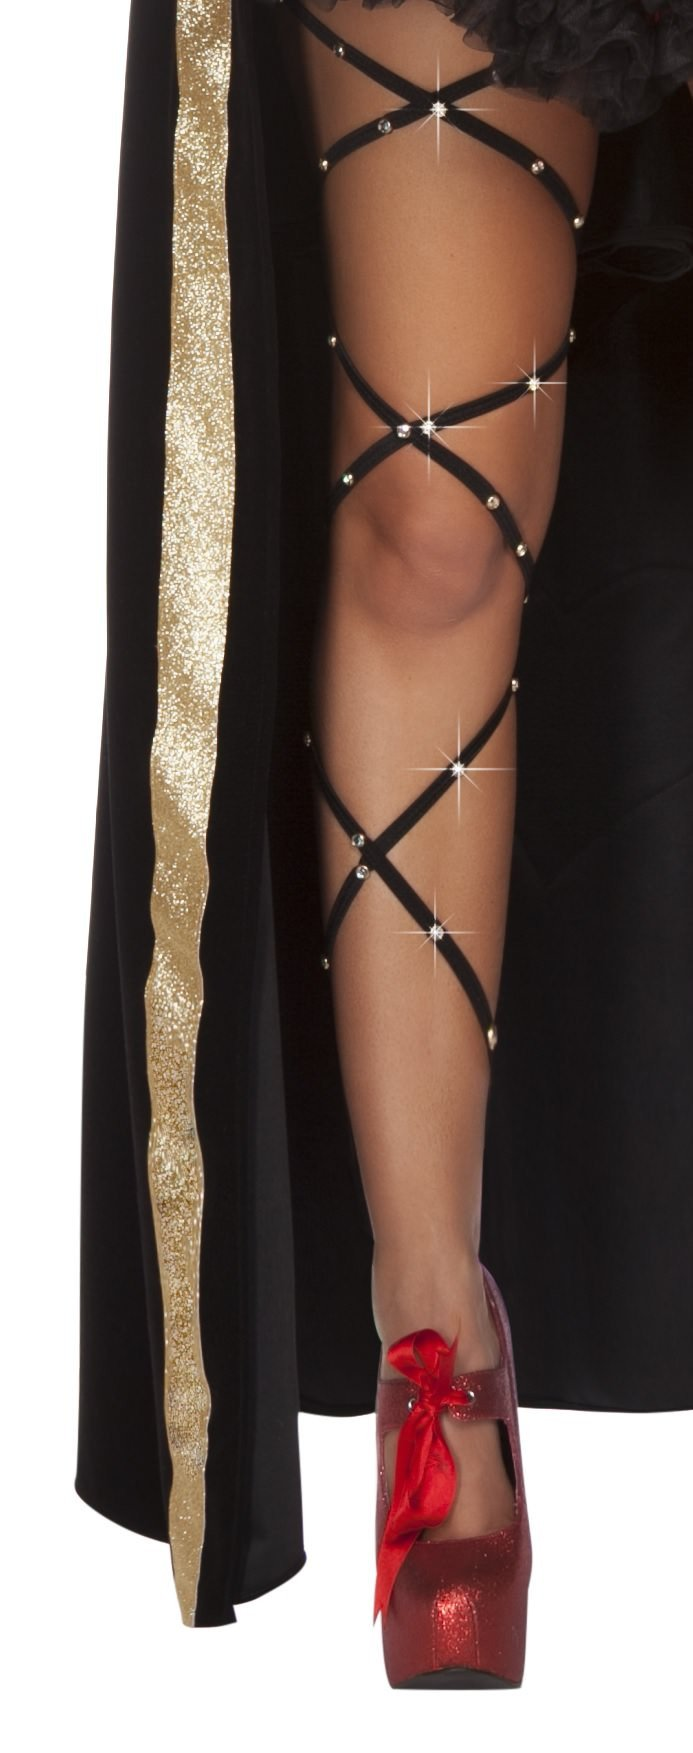 4644 Rhinestone Thigh Wrap